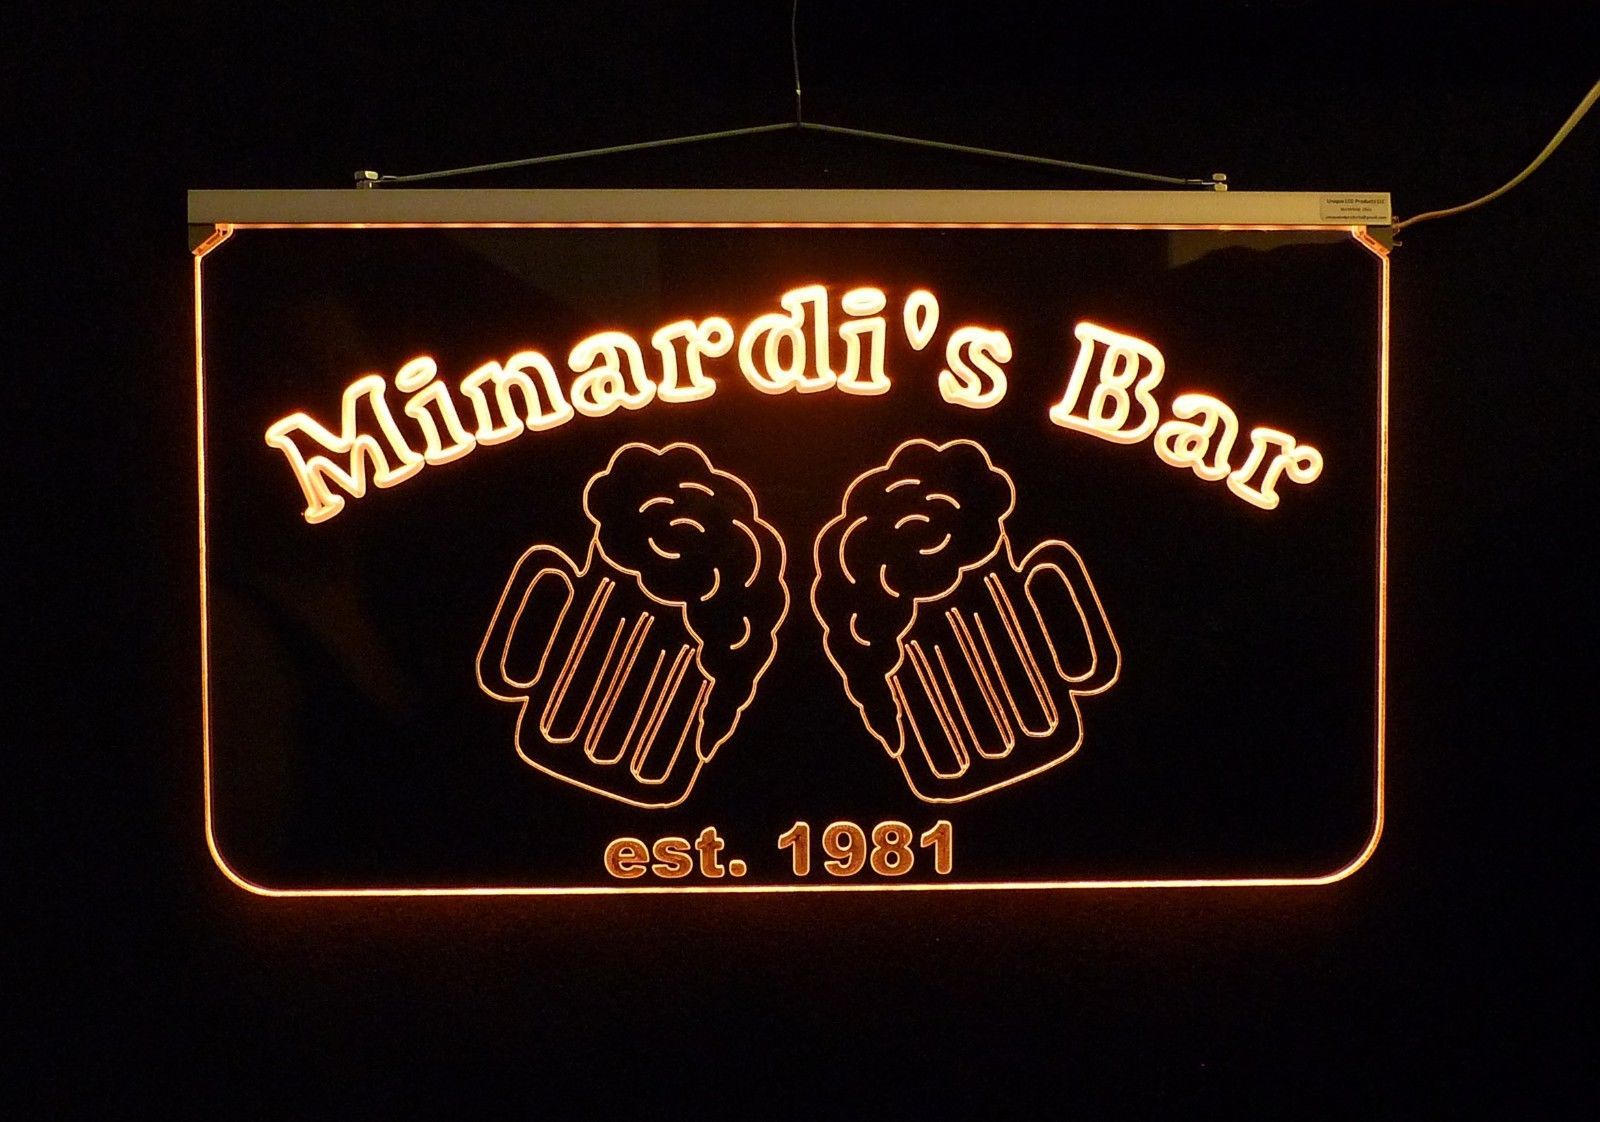 Personalized LED Bar/Pub Sign, Design your own Sign image 5